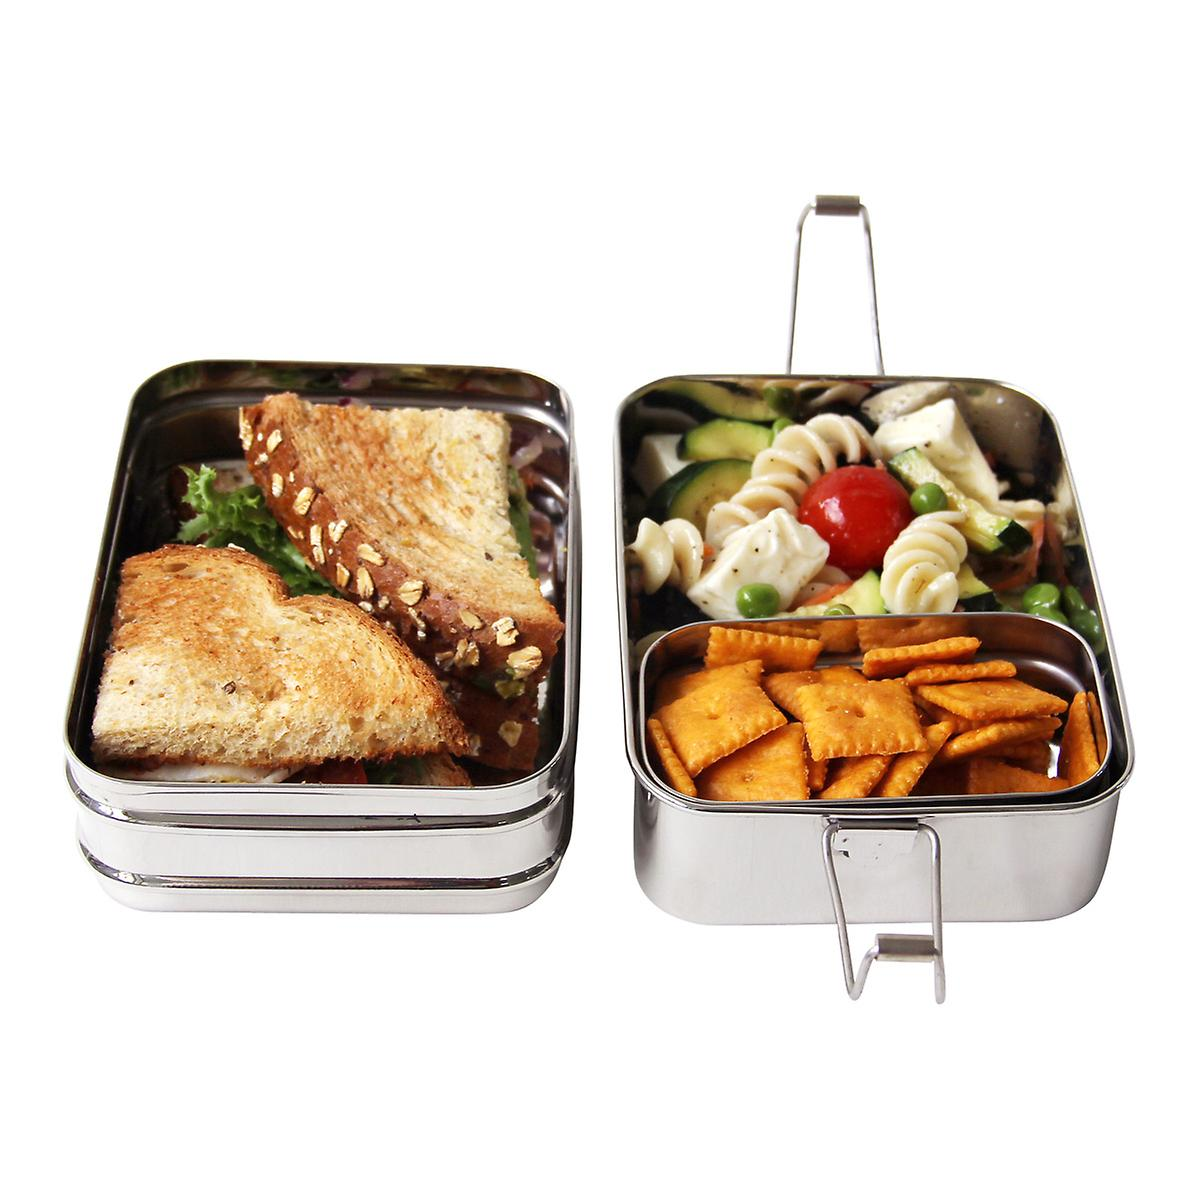 fac1dccfcc ECOlunchbox Stainless Steel Rectangular 3-in-1 Lunch Box | The Container  Store